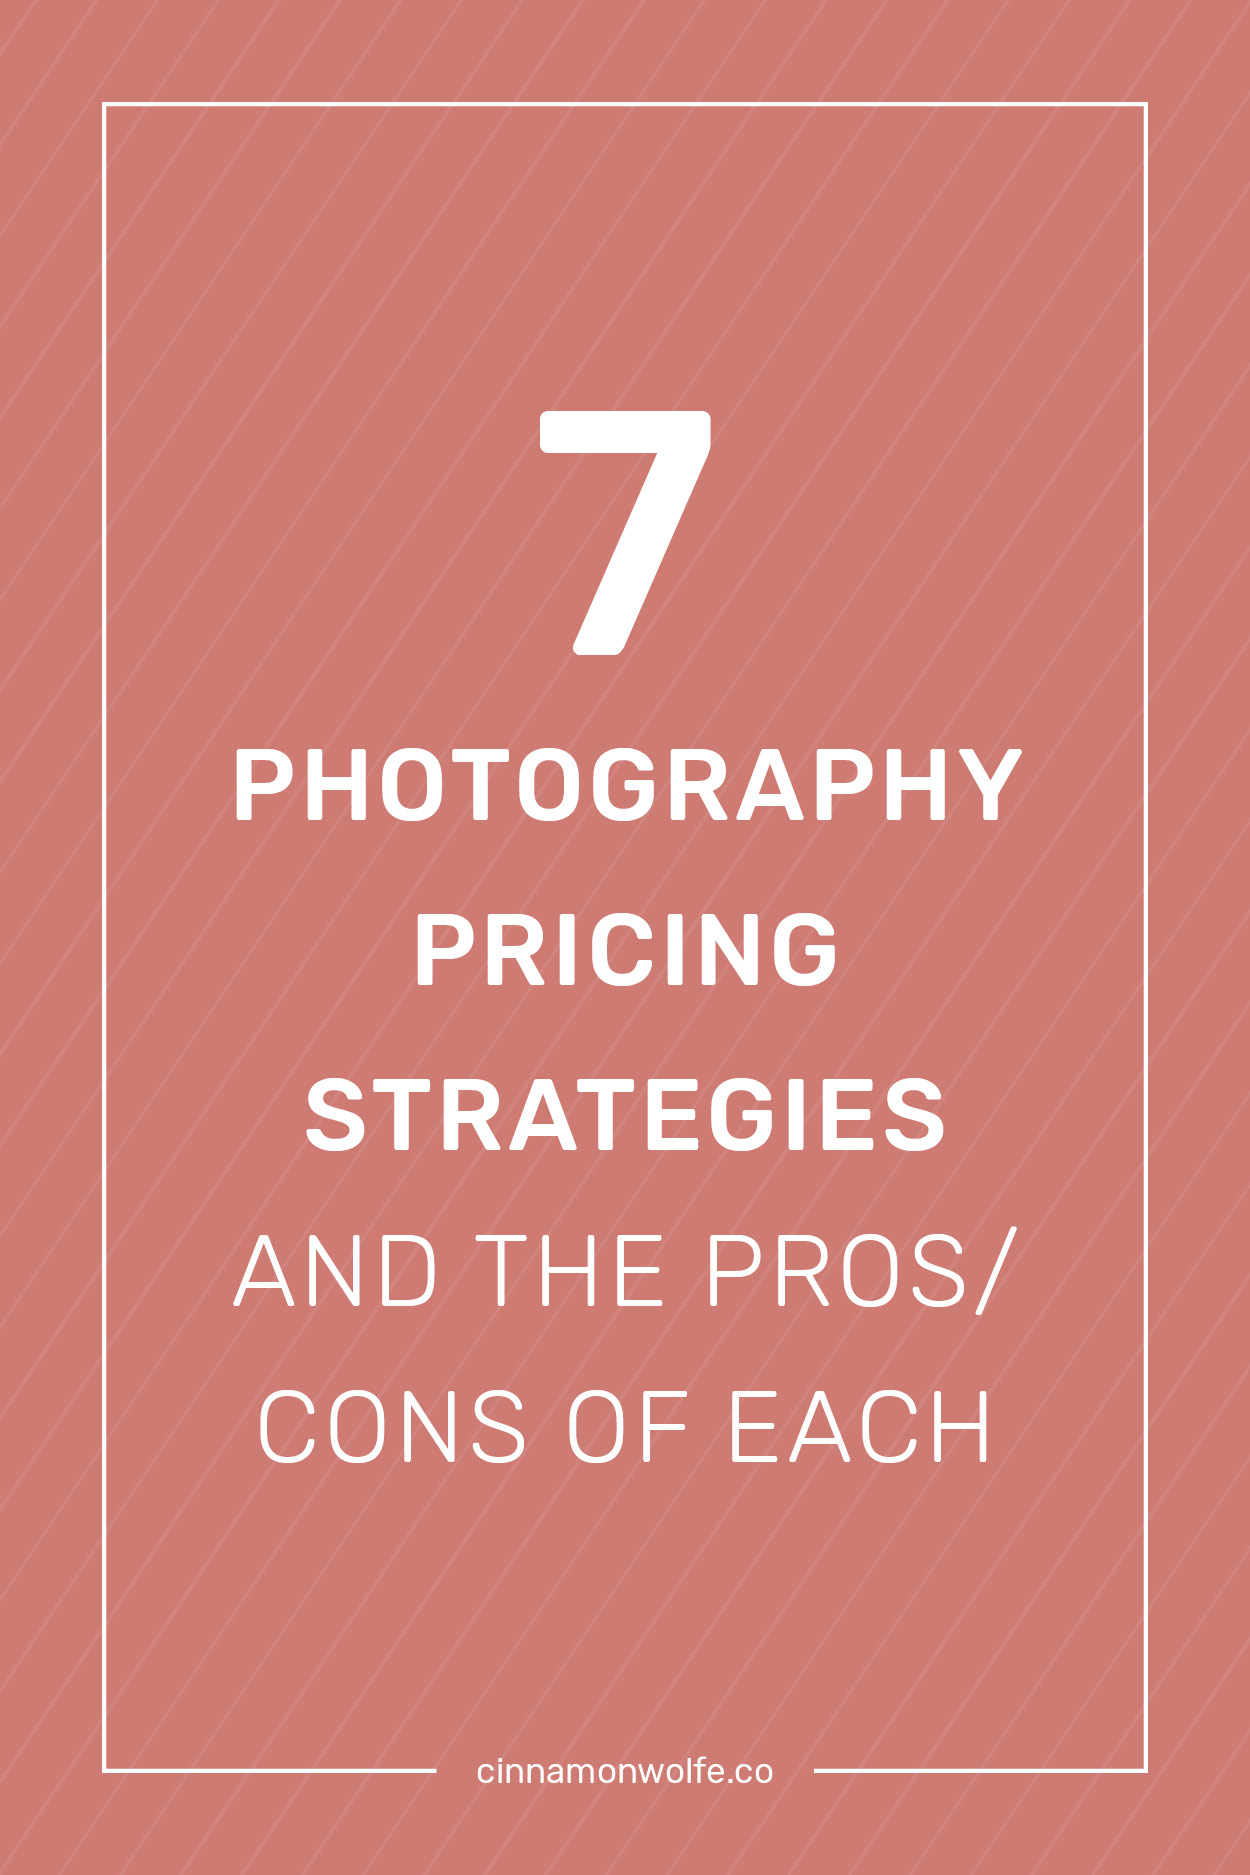 7 photography pricing strategies & the pros/cons of each  |  Cinnamonwolfe.co